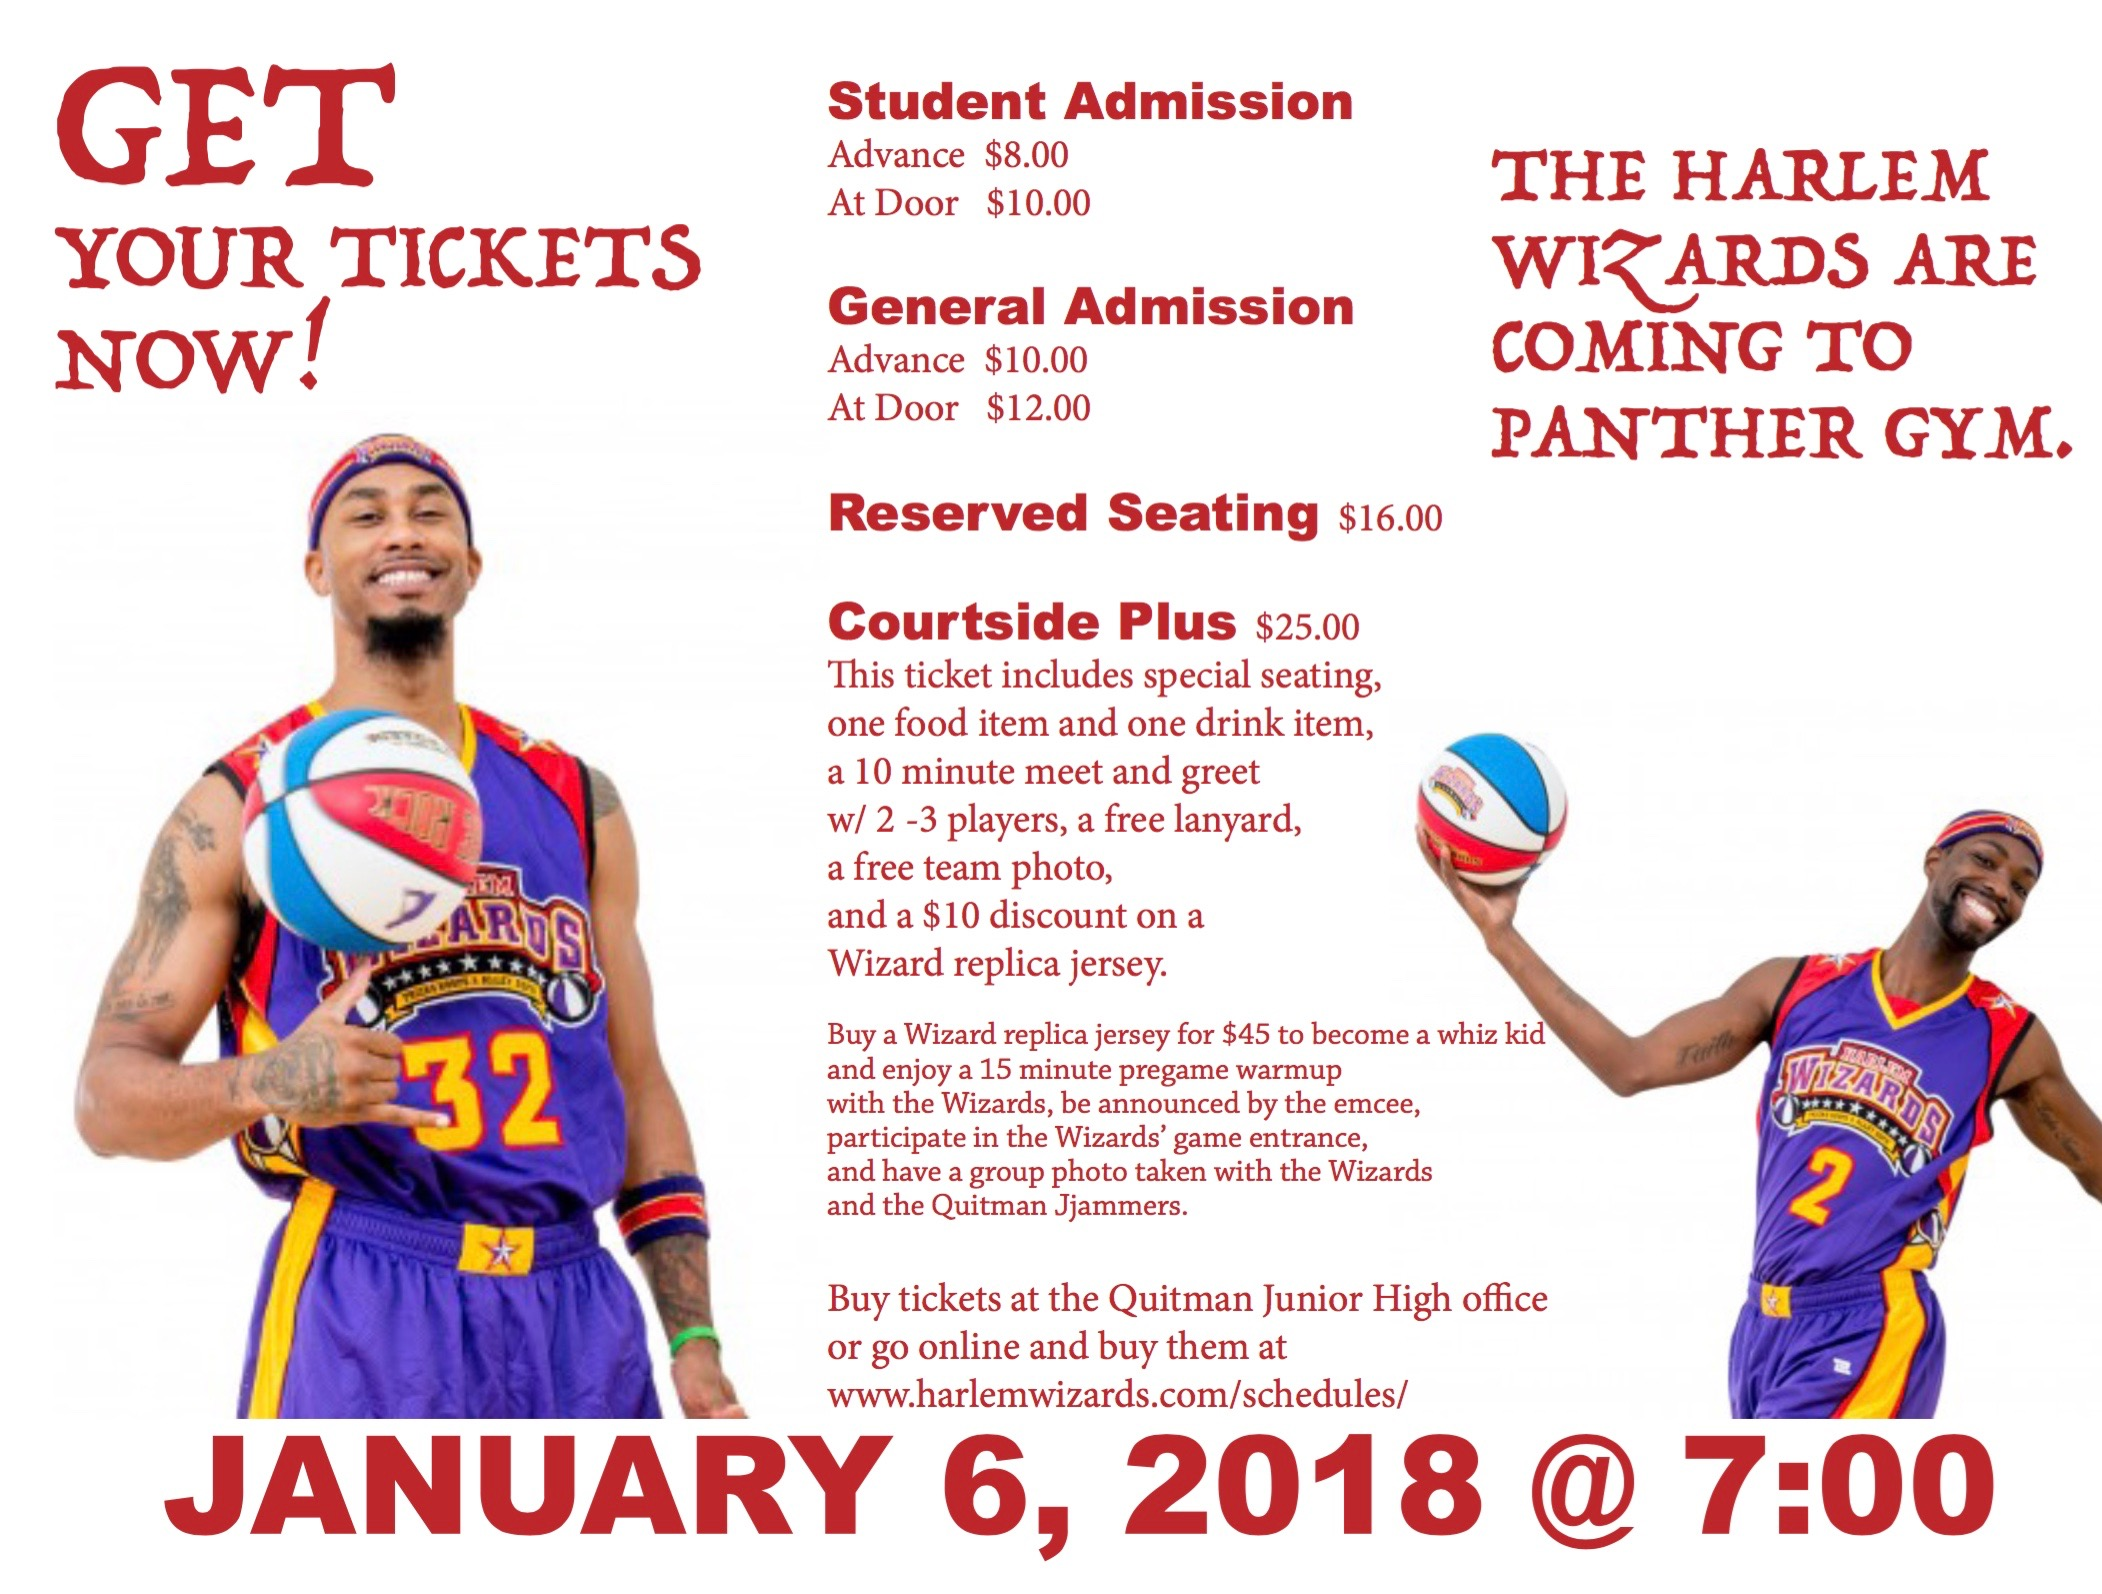 Flyer for Harlem Wizards game this Saturday, January 6th at 6:00 p.m.